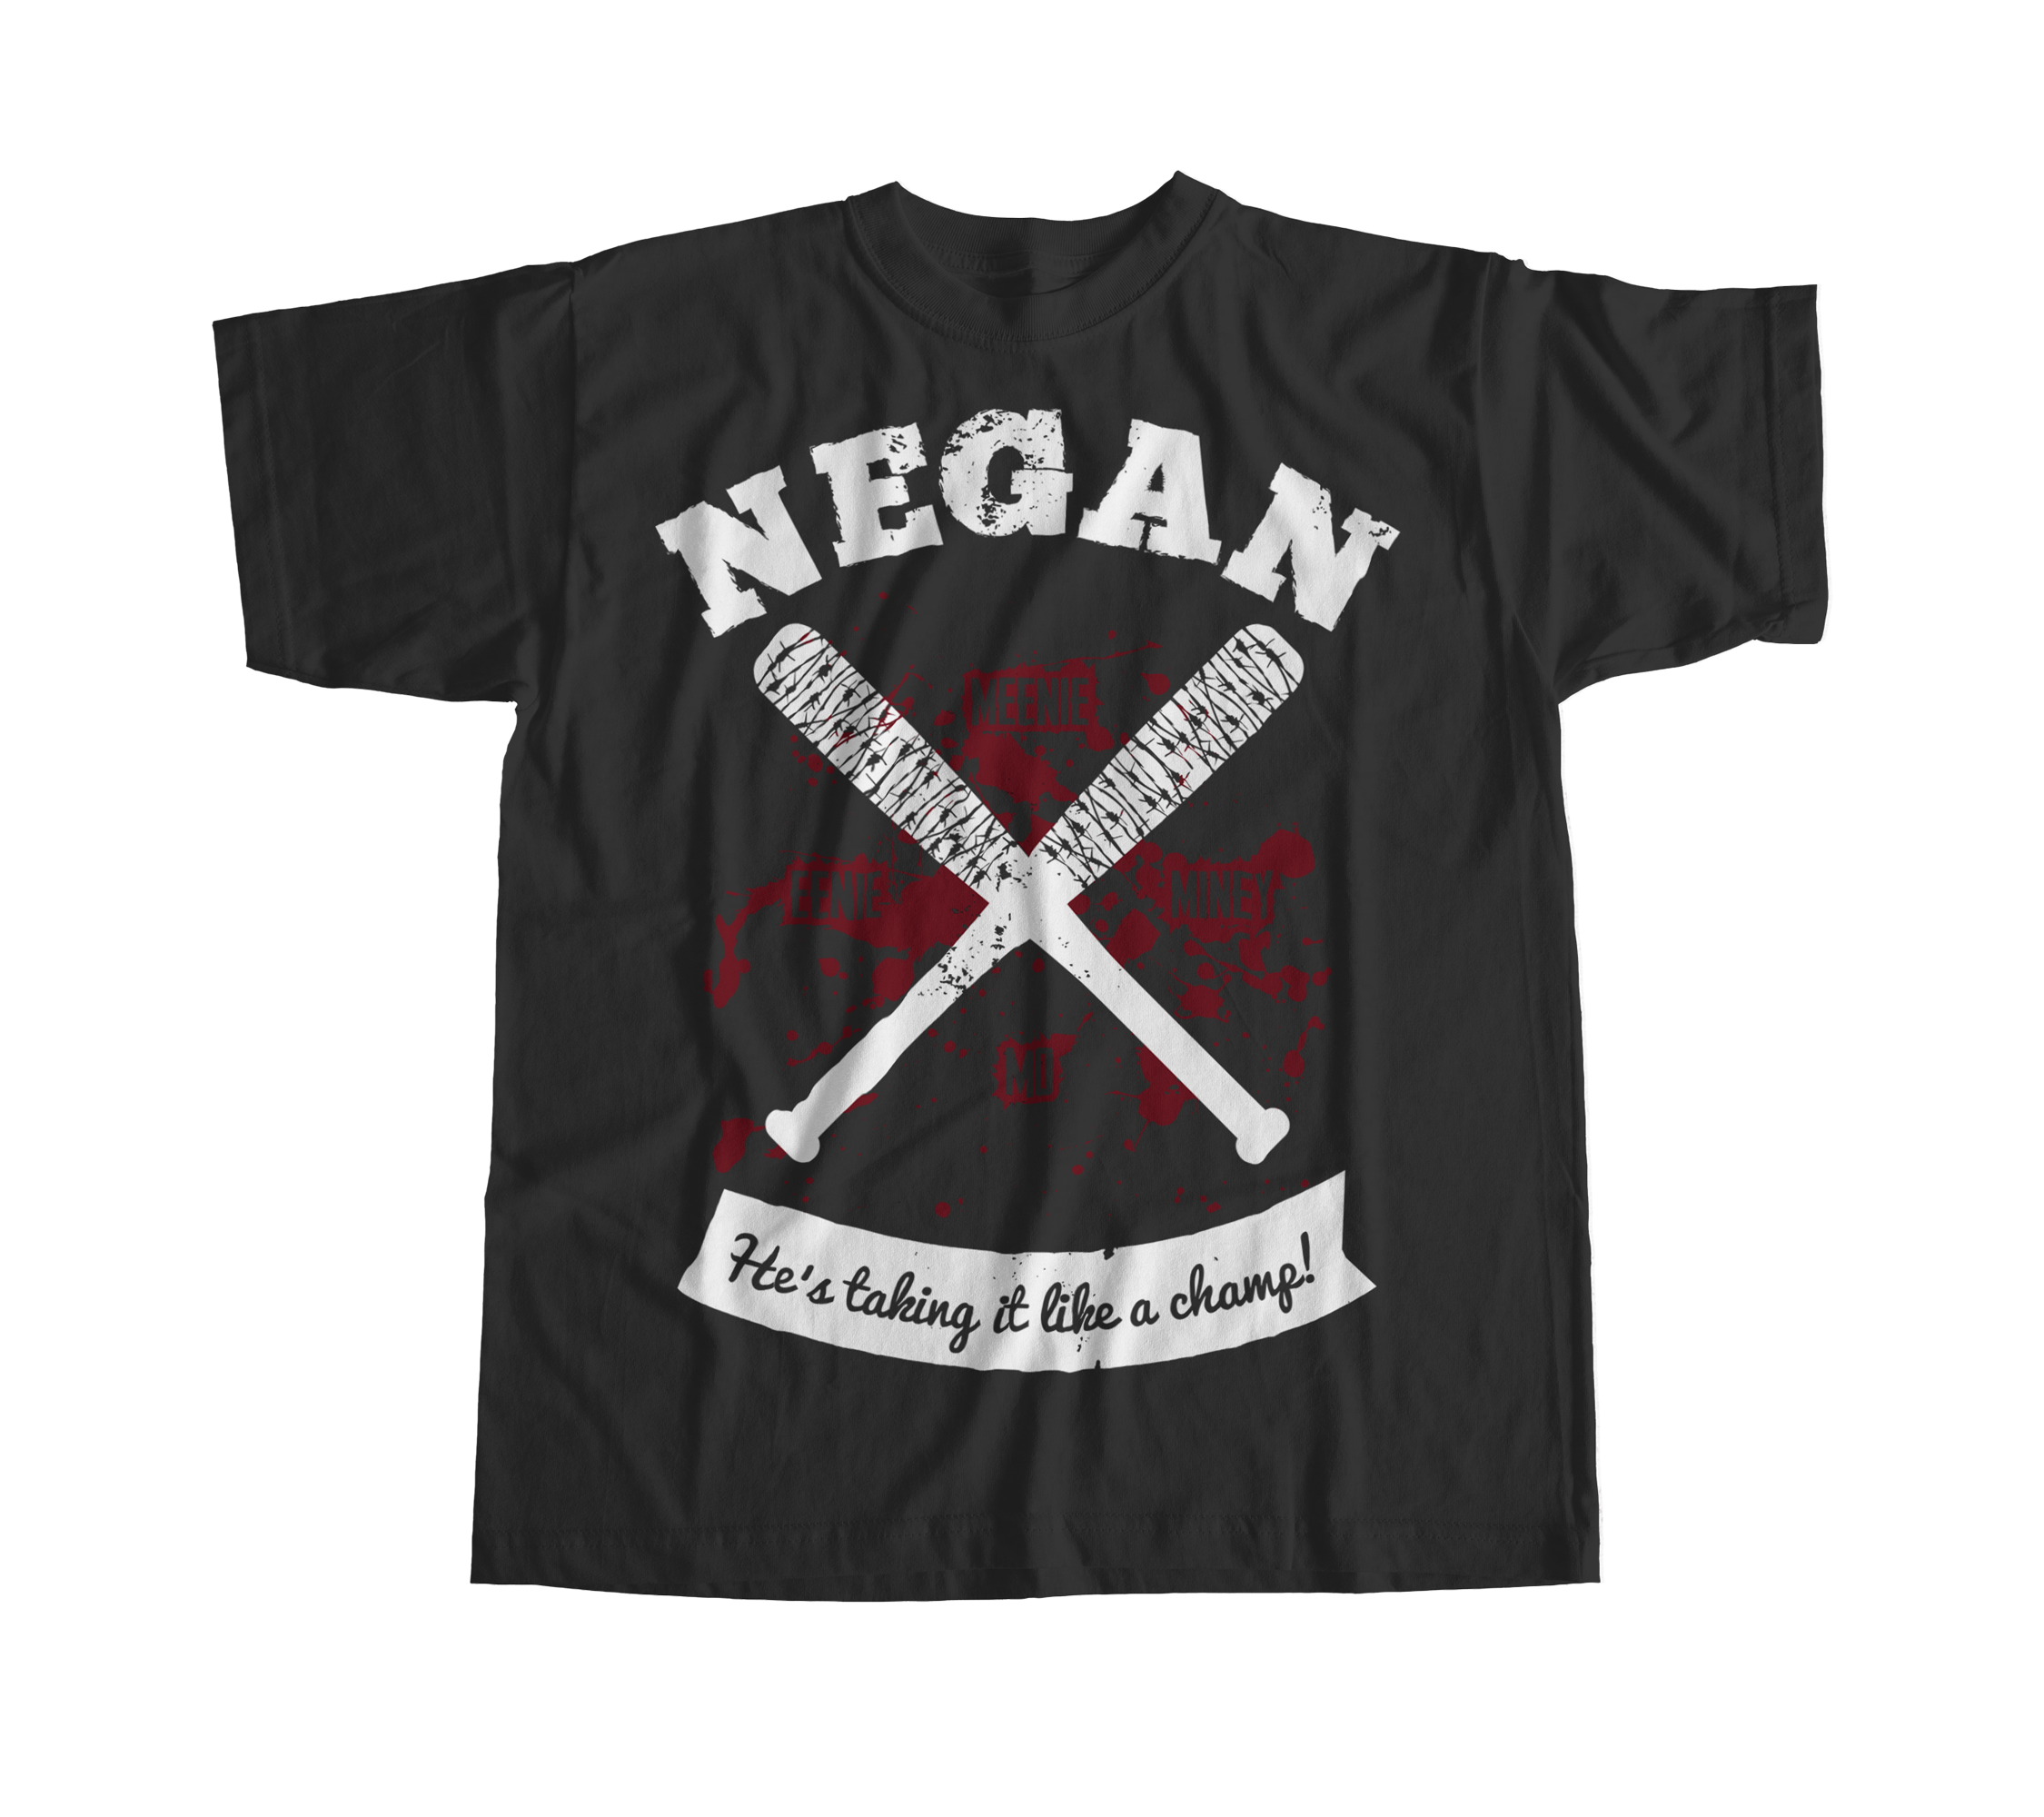 a6df9e849e39 Exclusive Walking Dead Negan Inspired T Shirt from Something Vicious